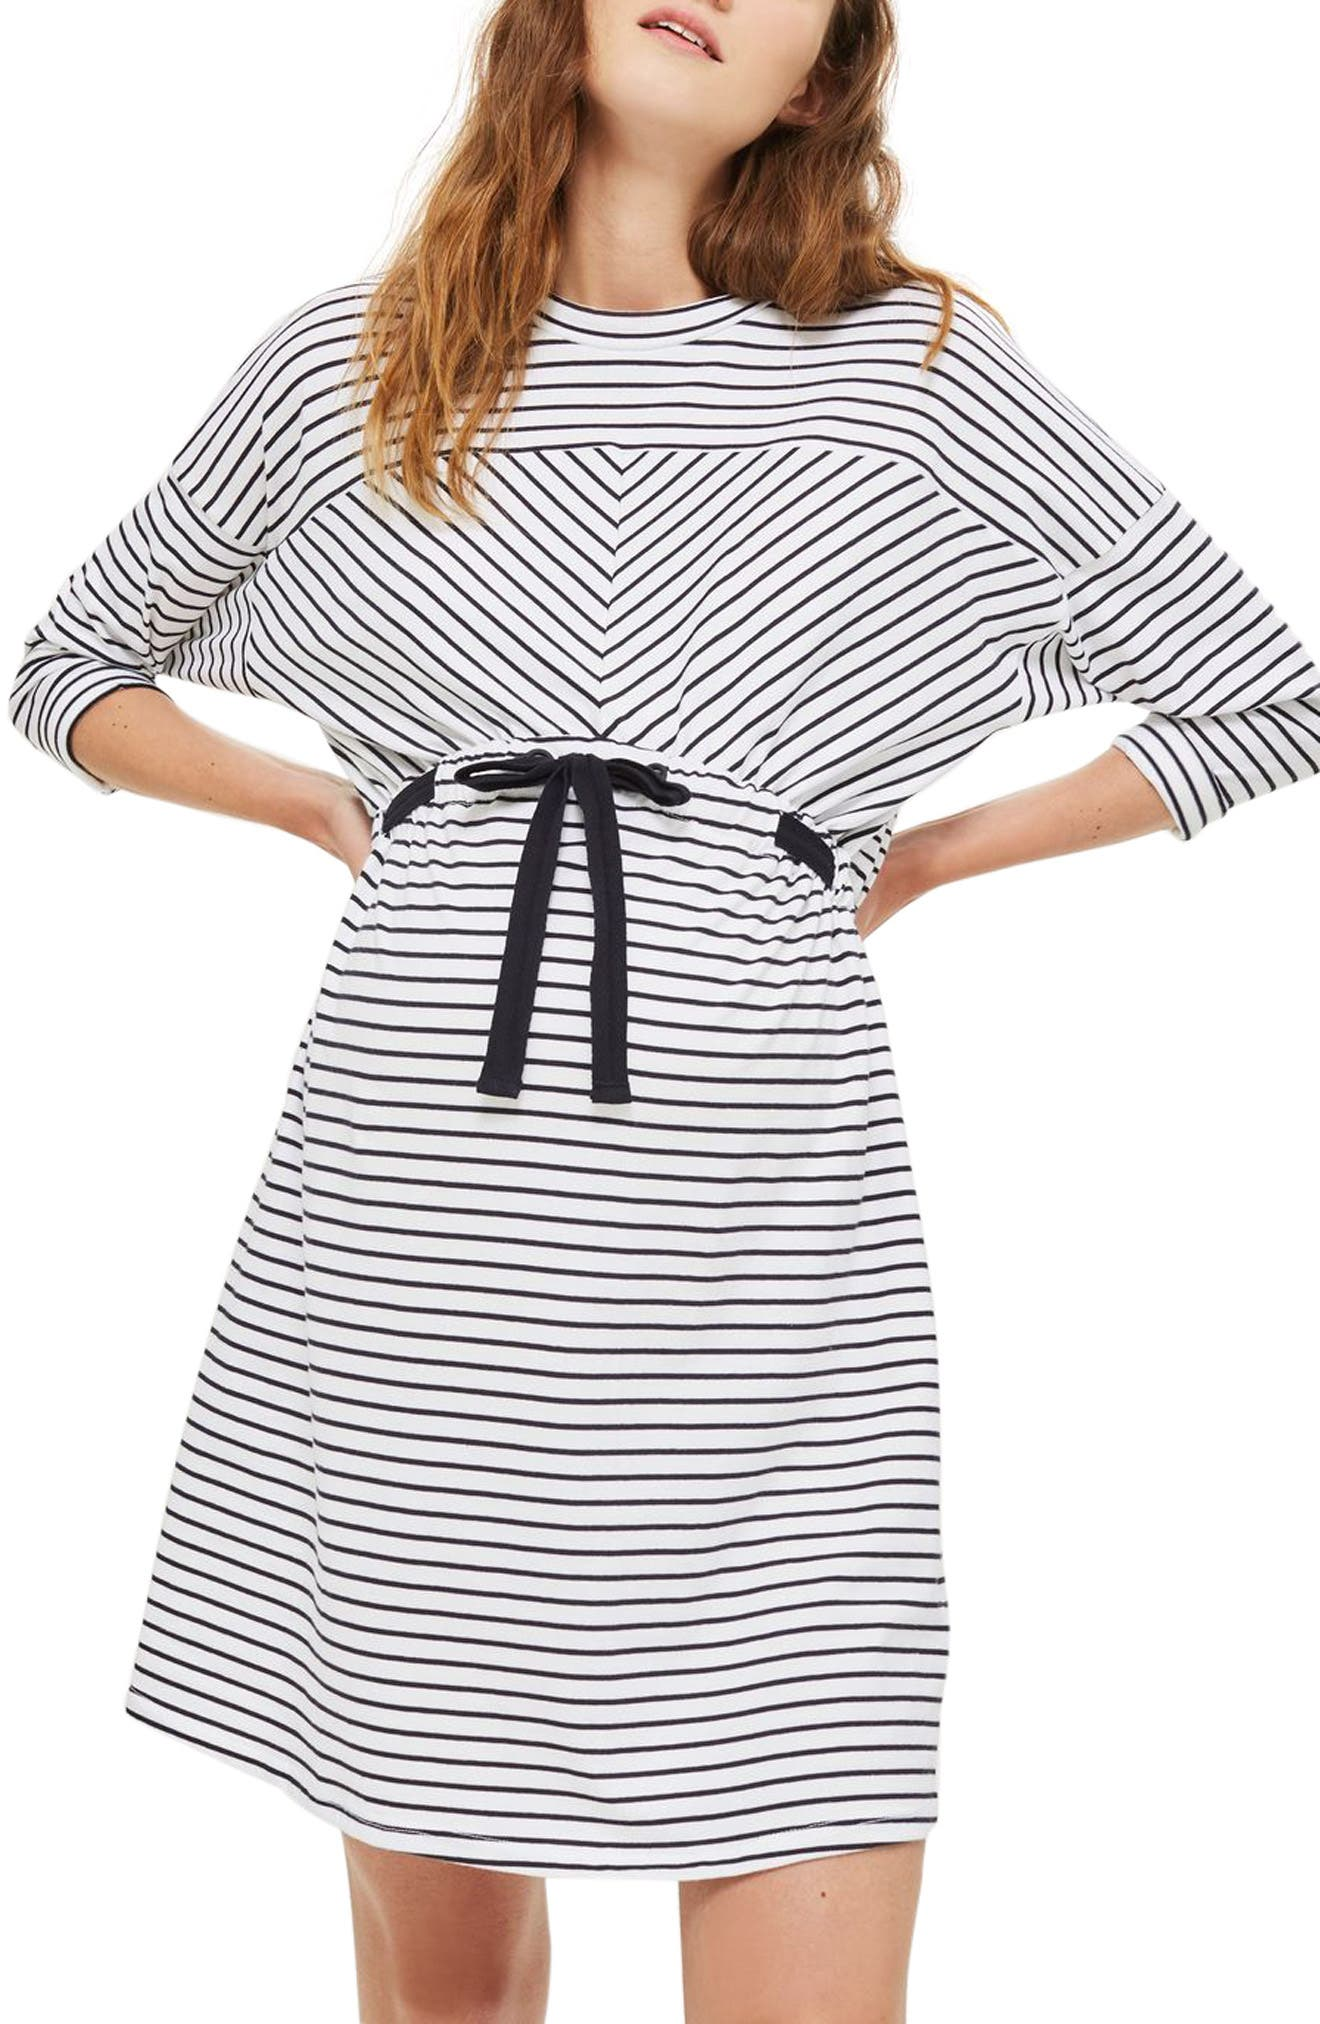 Topshop Stripe Belted Batwing Maternity Dress